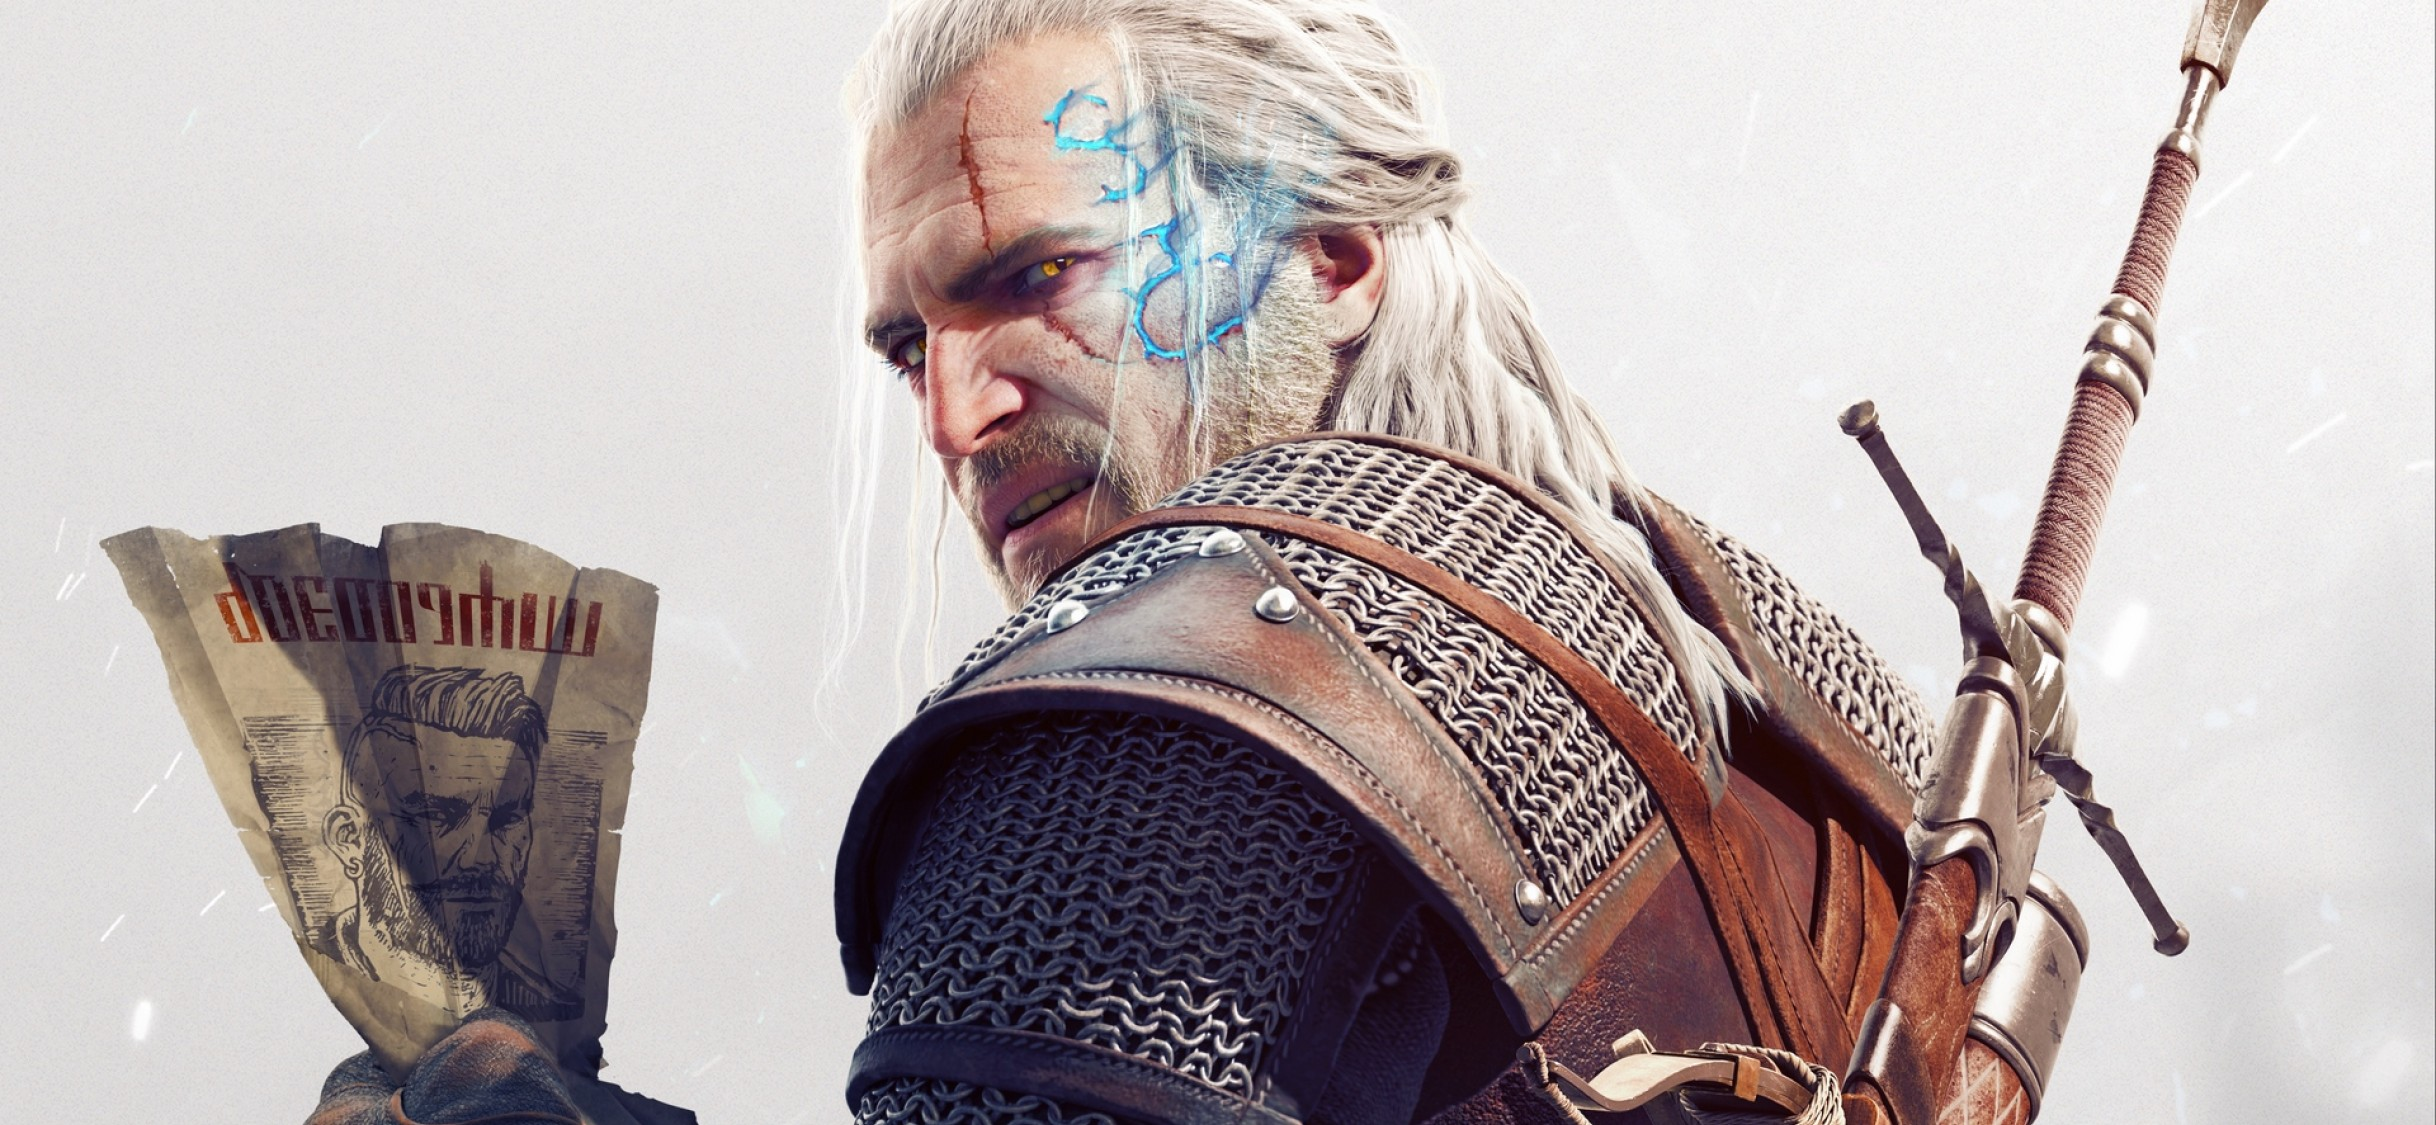 The Witcher 3 Hd Wallpaper Iphone X Hd Wallpaper